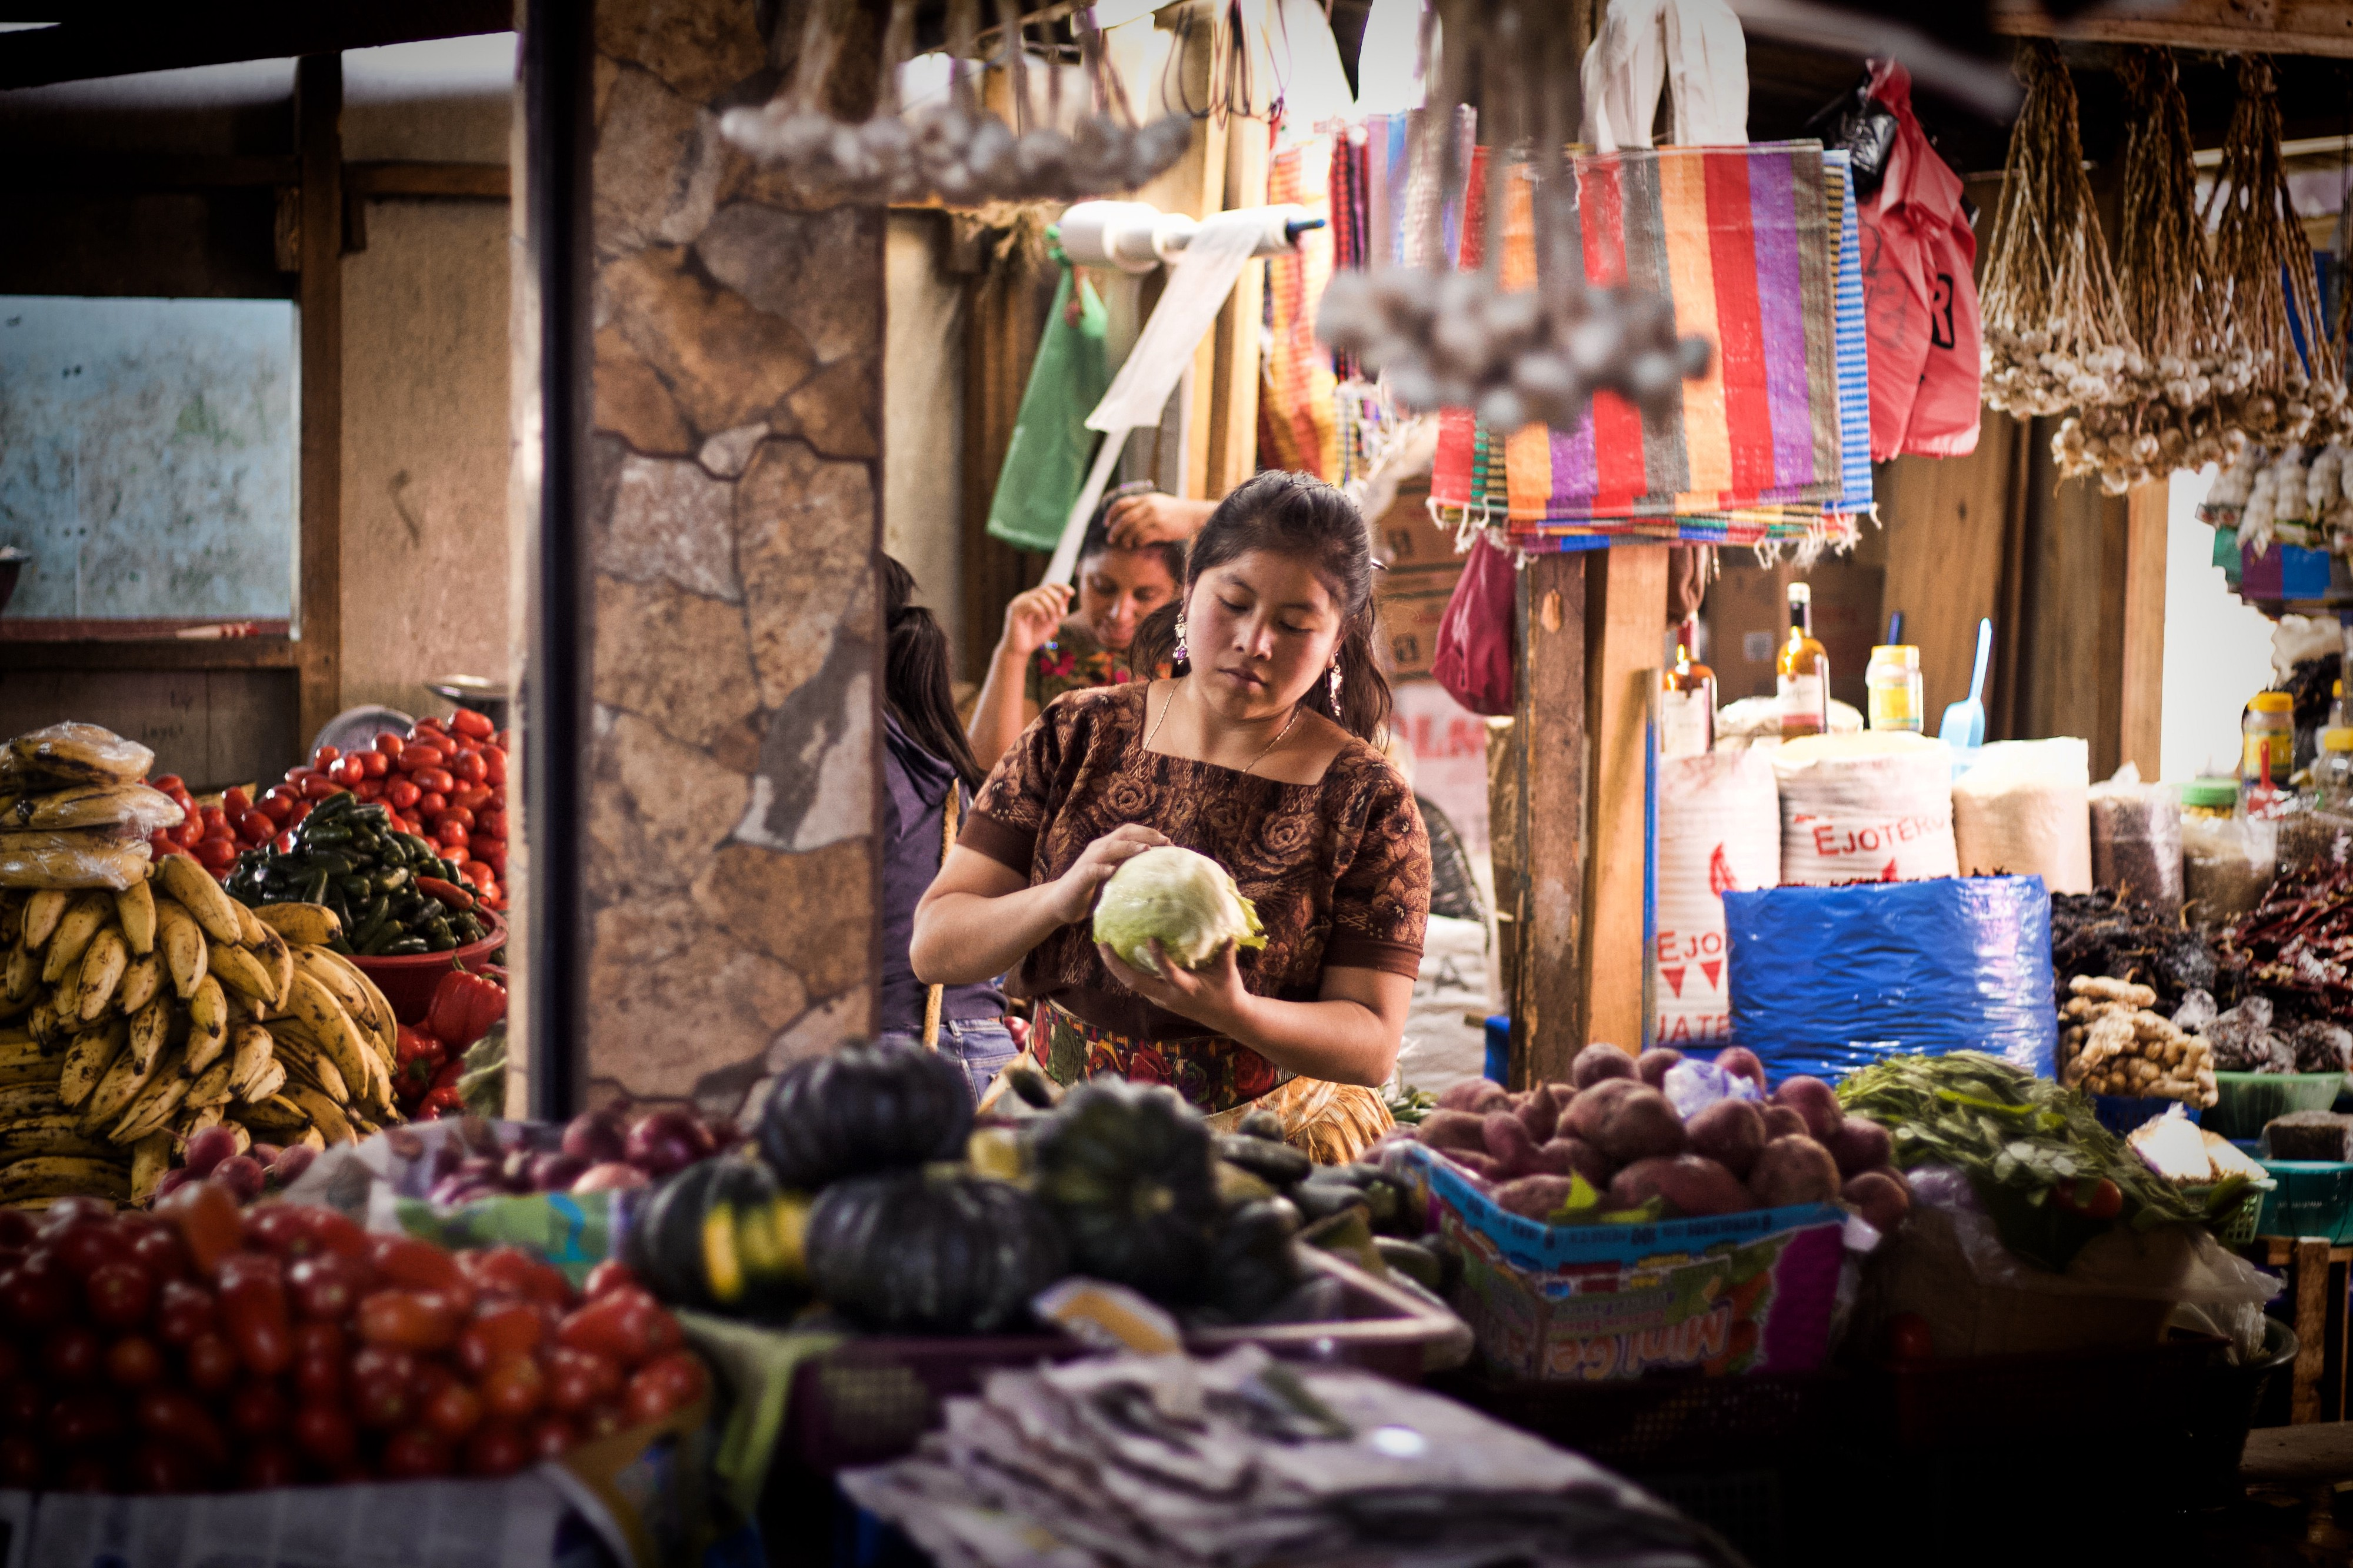 A woman selling fruit in the market, Guatemala